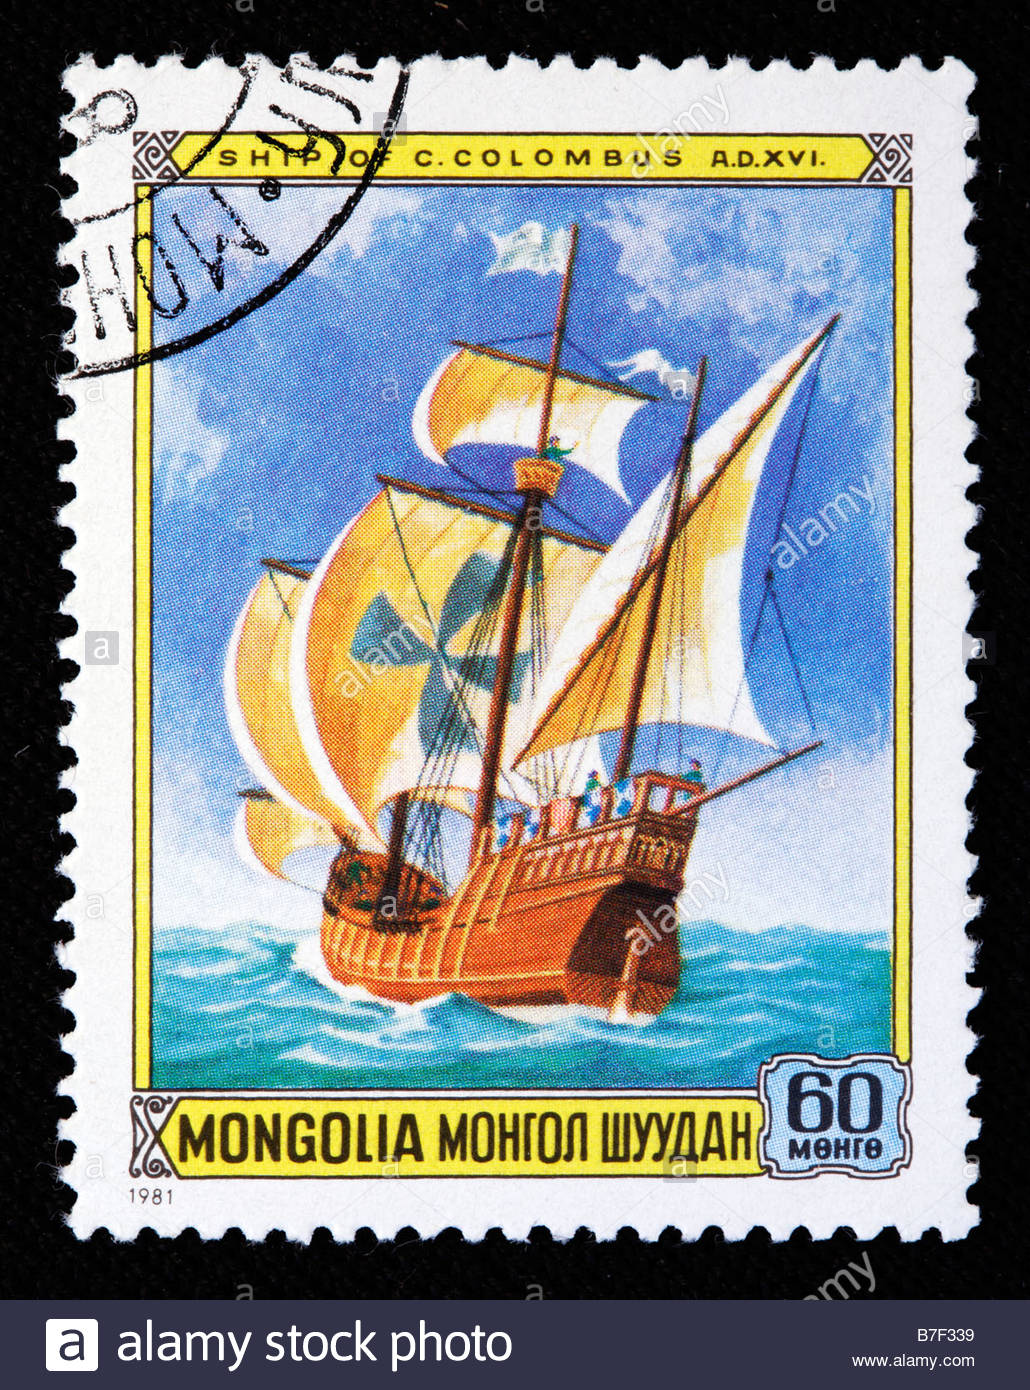 Sail ship of Columbus (16th century), postage stamp, Mongolia, 1981 - Stock Image